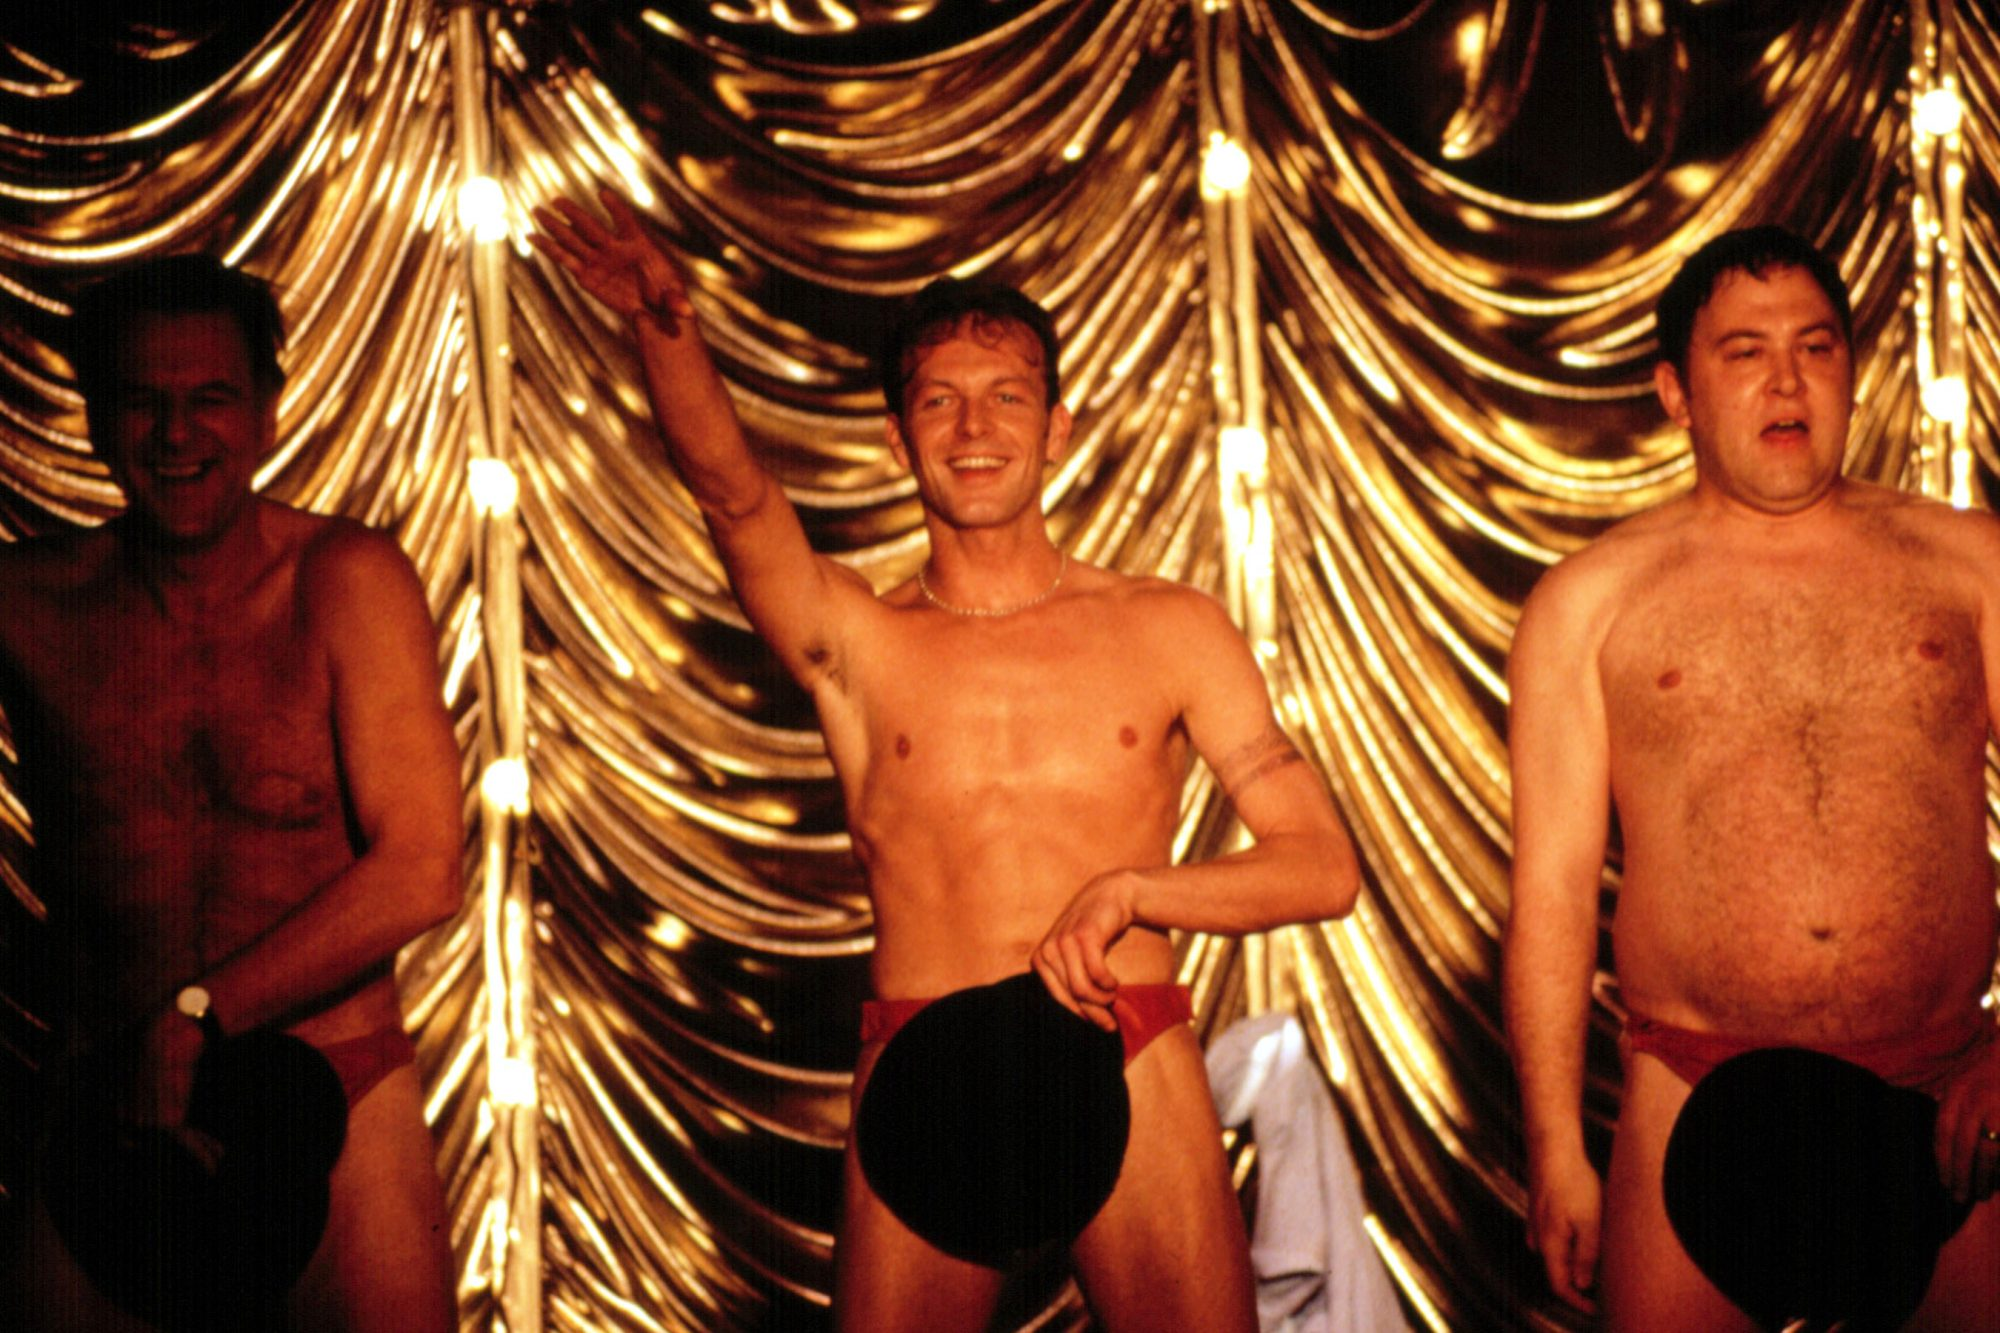 FULL MONTY, Steve Huison, Mark Addy, 1997, TM & Copyright (c) 20th Century Fox Film Corp. All rights